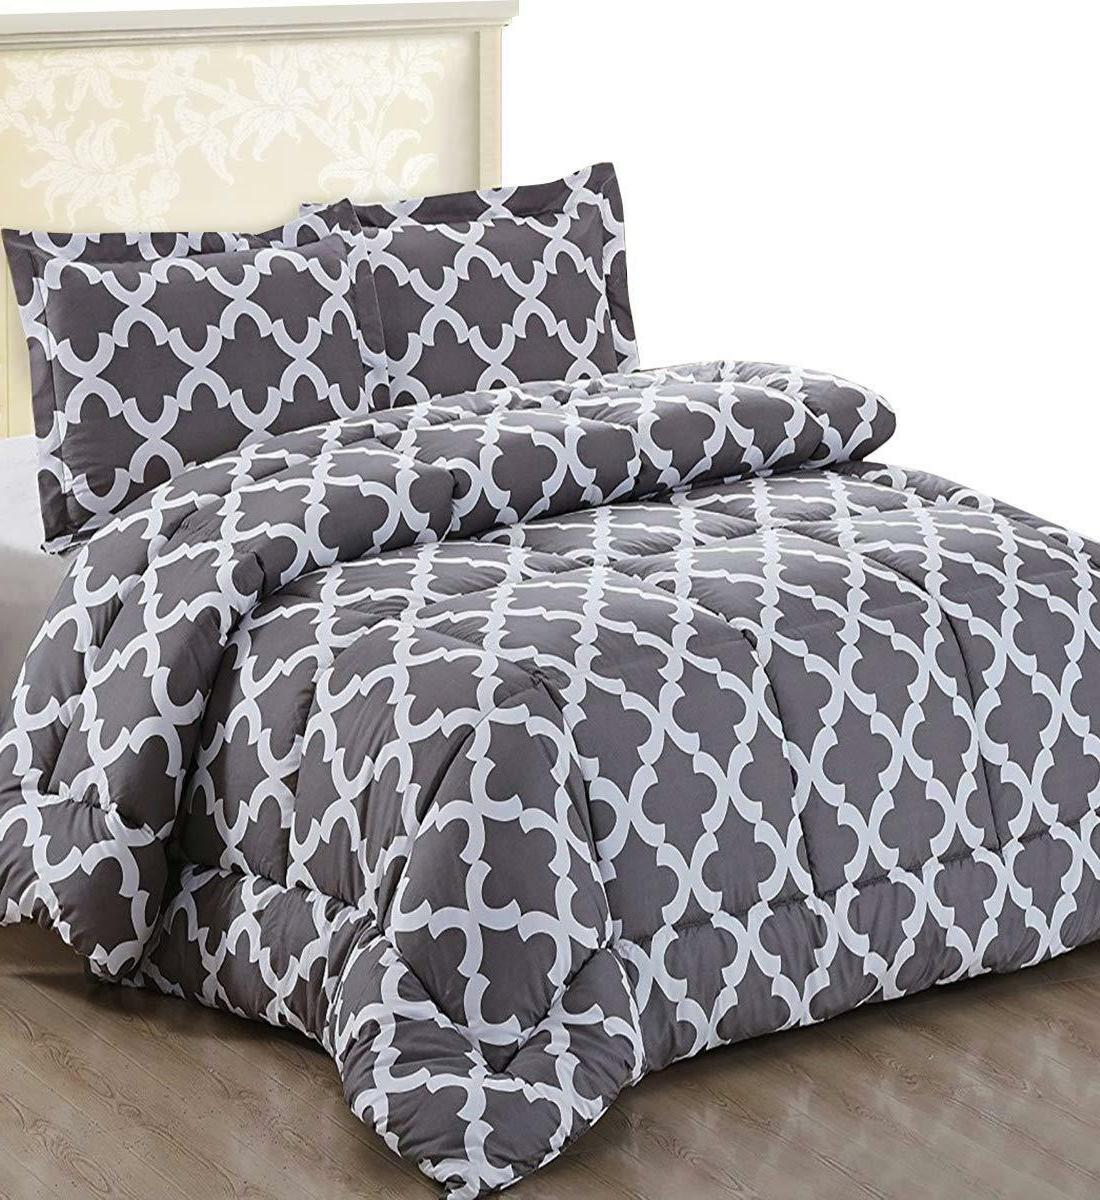 Utopia Bedding Goose Down Alternative Comforter Set with 2 P